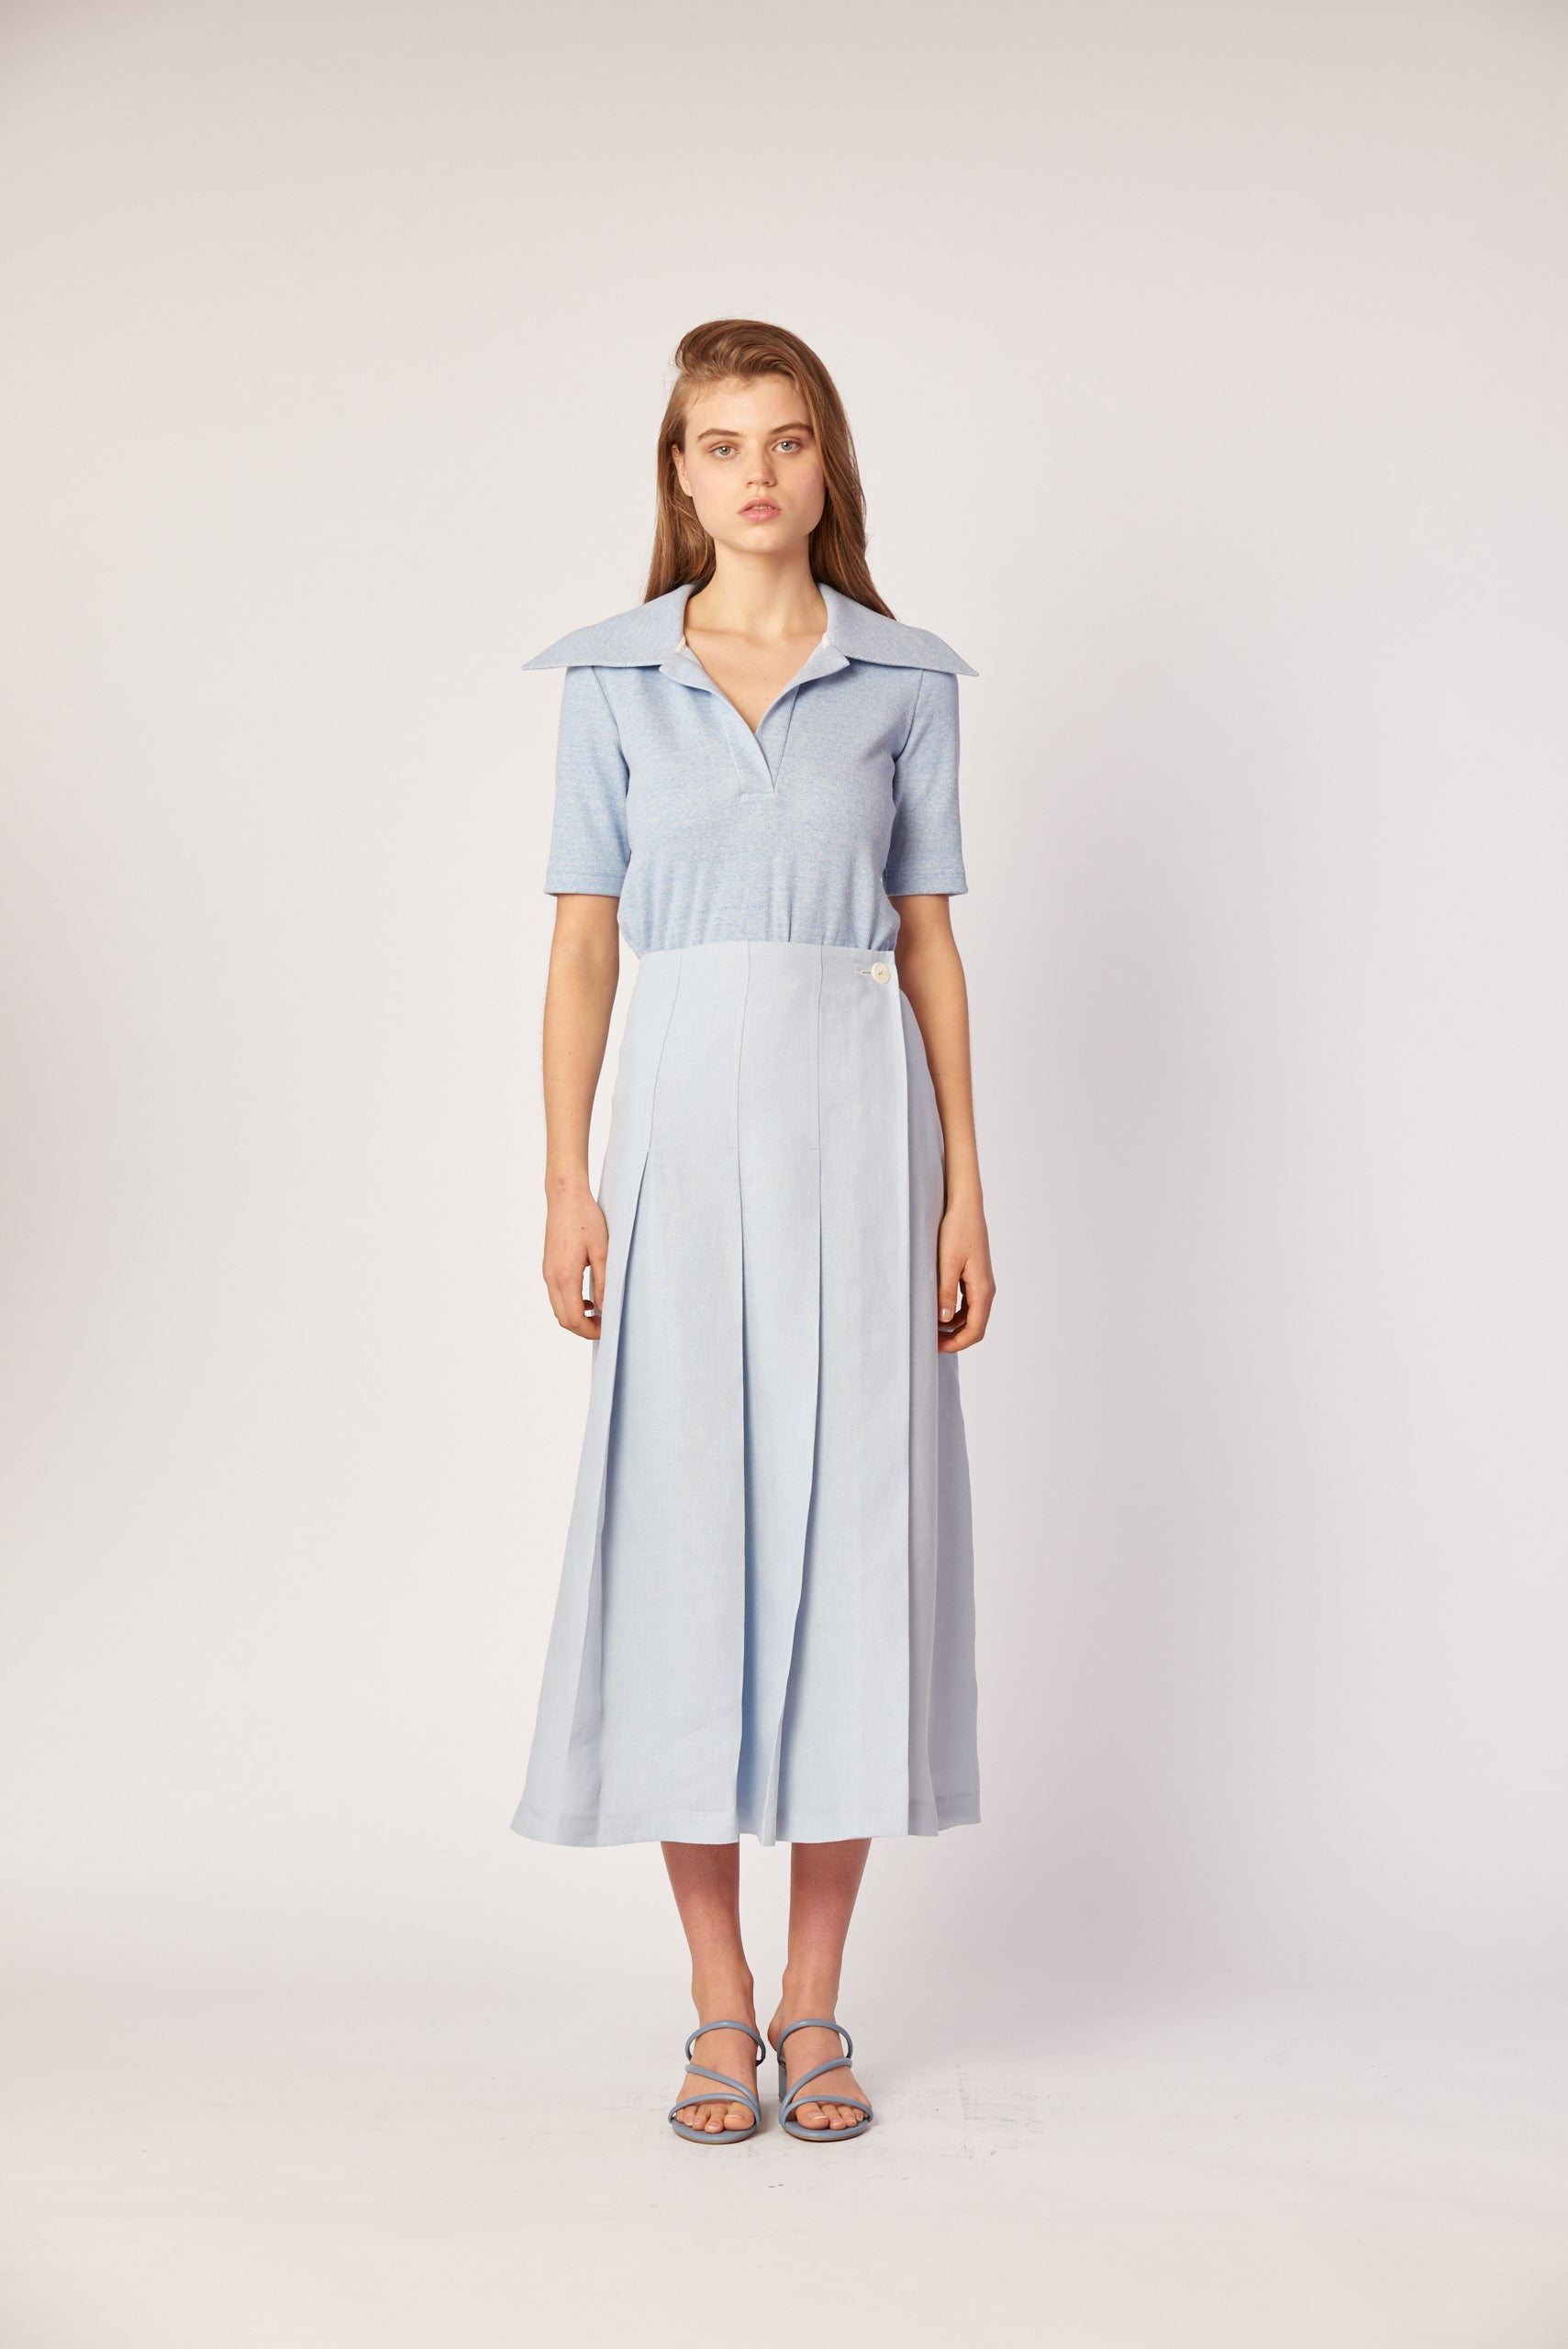 Penelope Skirt - Powder Blue